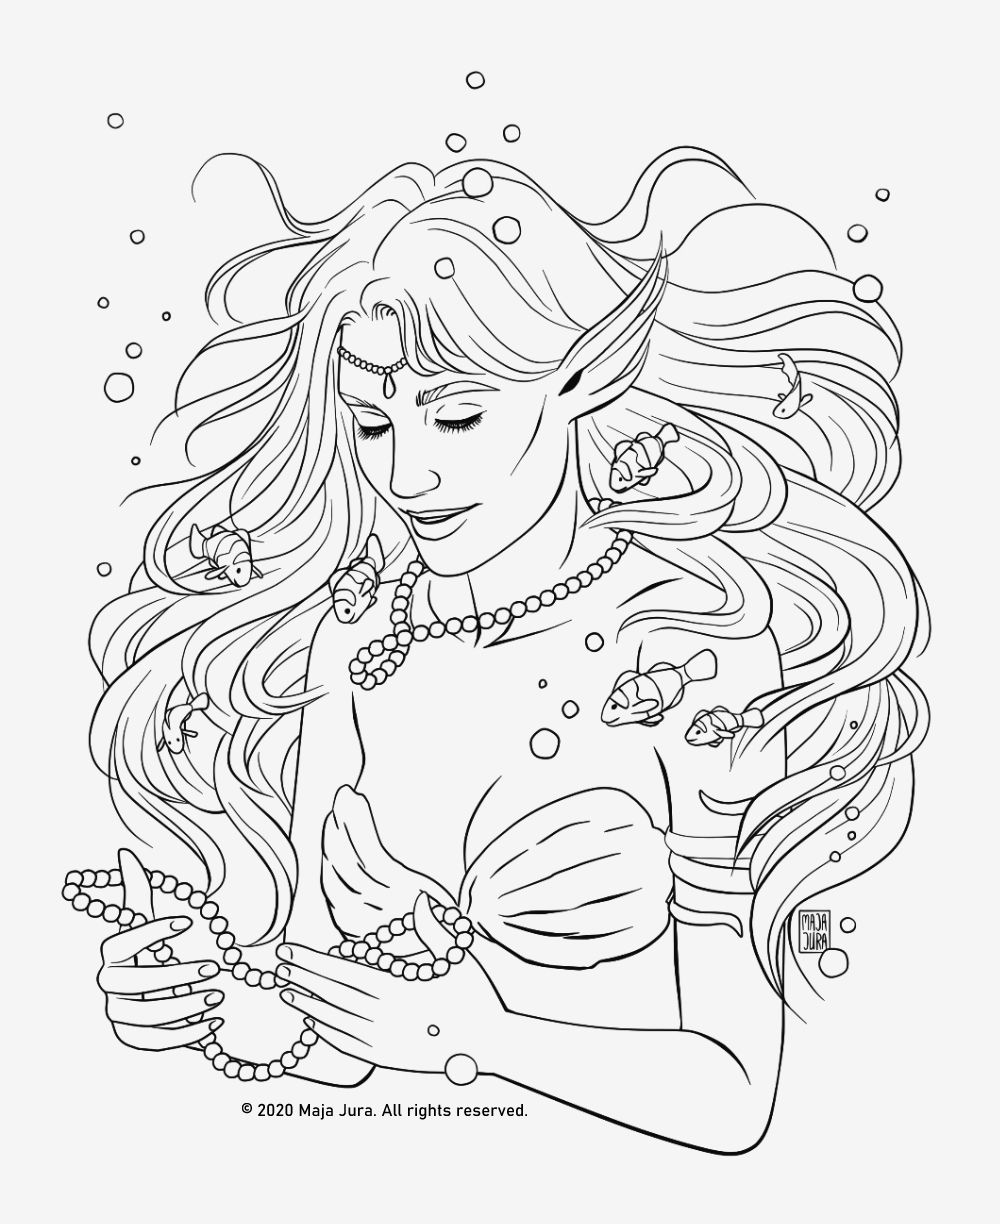 Mermaid Coloring Page Lineart Coloring Pages Premium Etsy Mermaid Coloring Pages Mermaid Coloring Fairy Coloring Pages